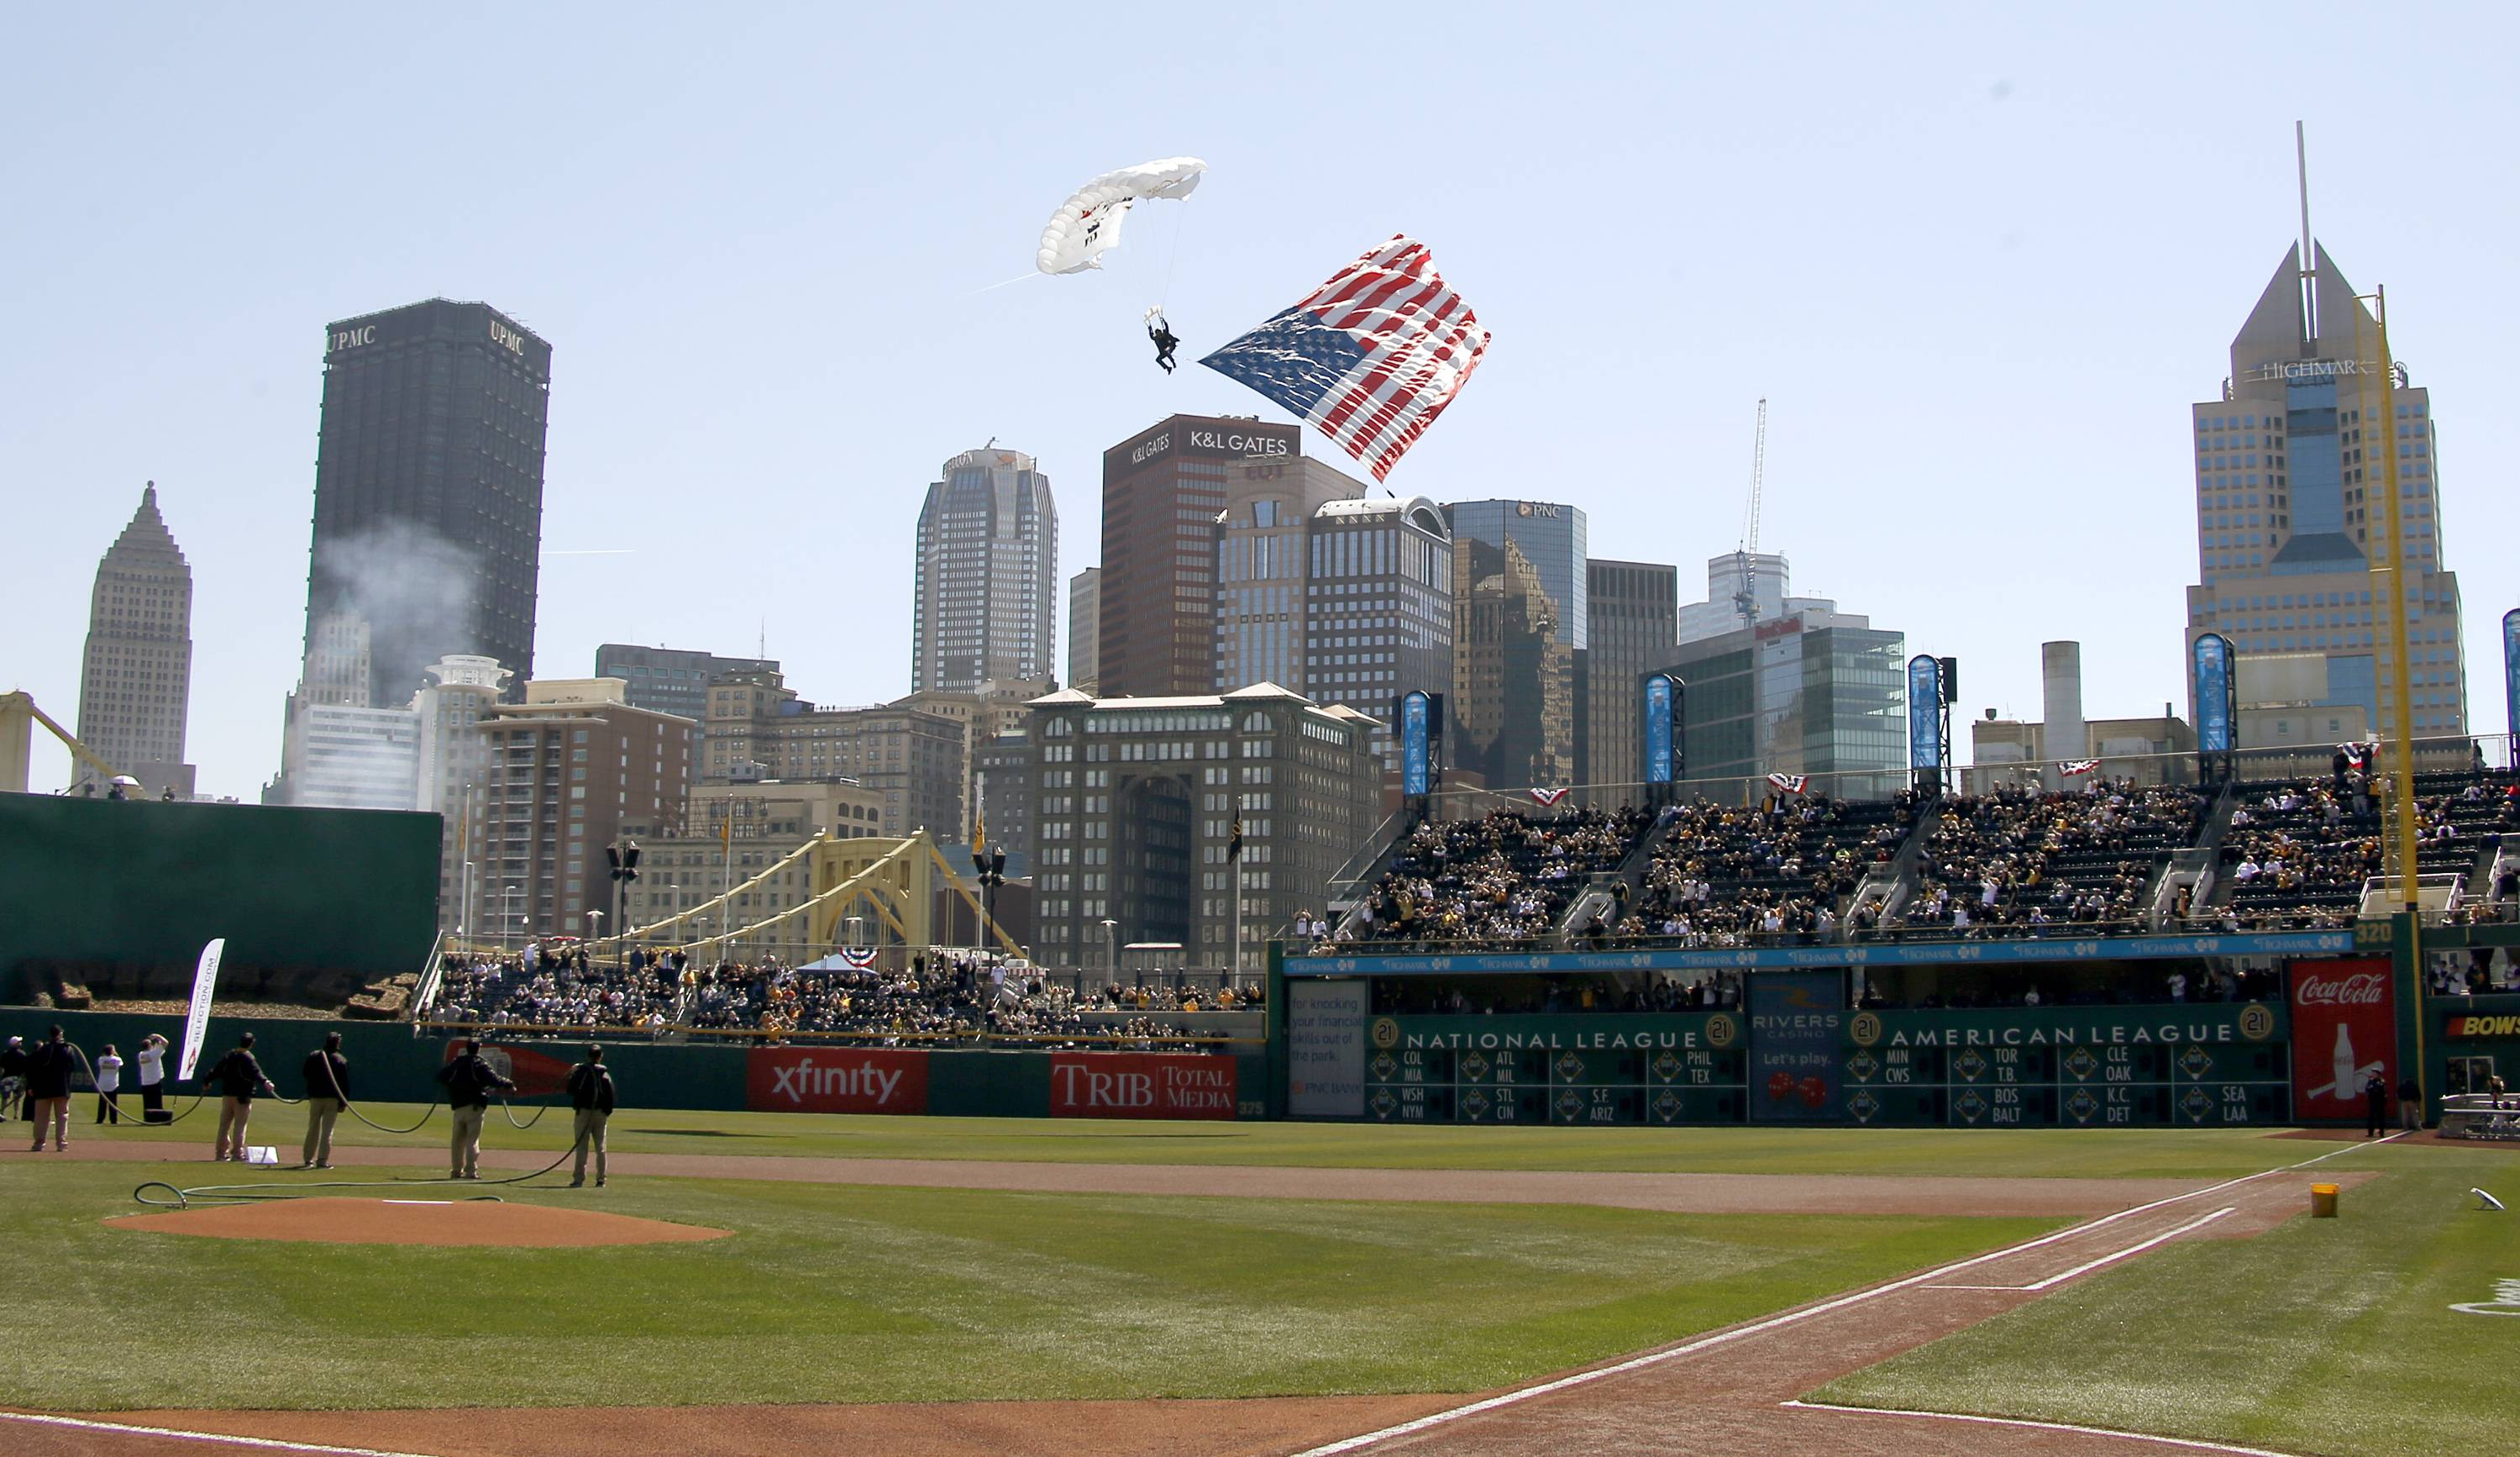 A paratrooper with an American flag descends onto PNC Park during opening day ceremonies.